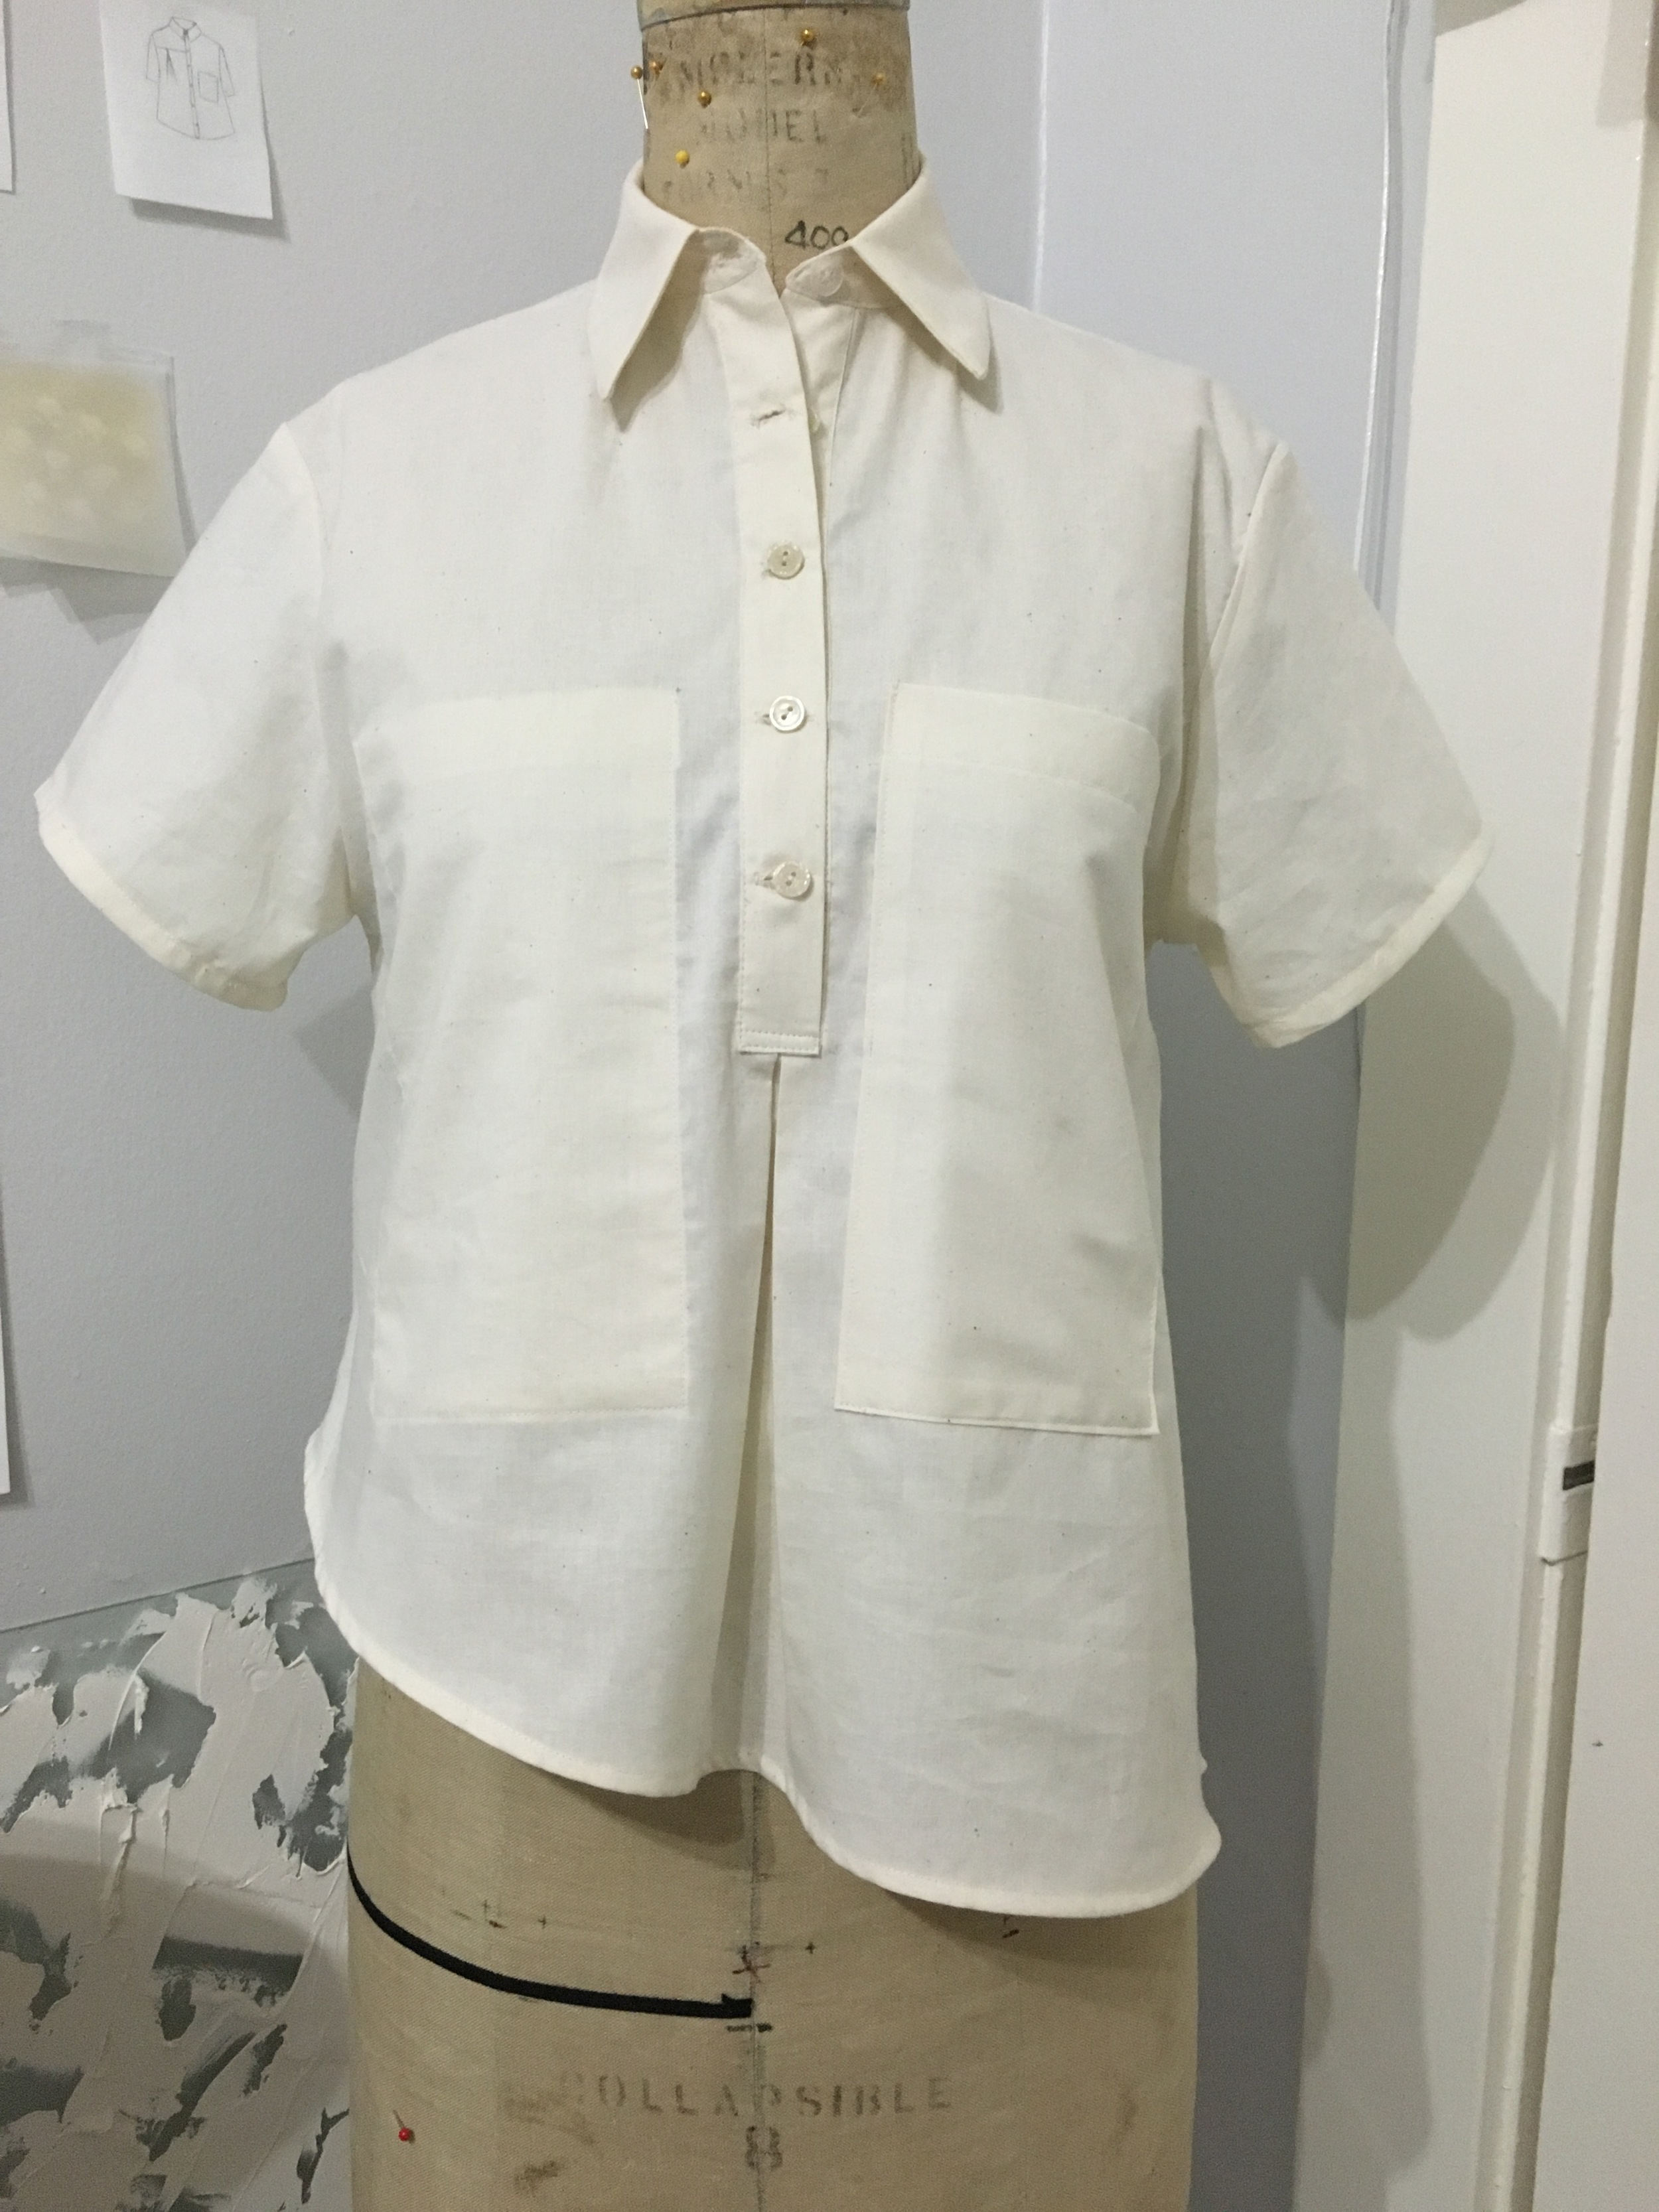 working on the perfect button up shirt